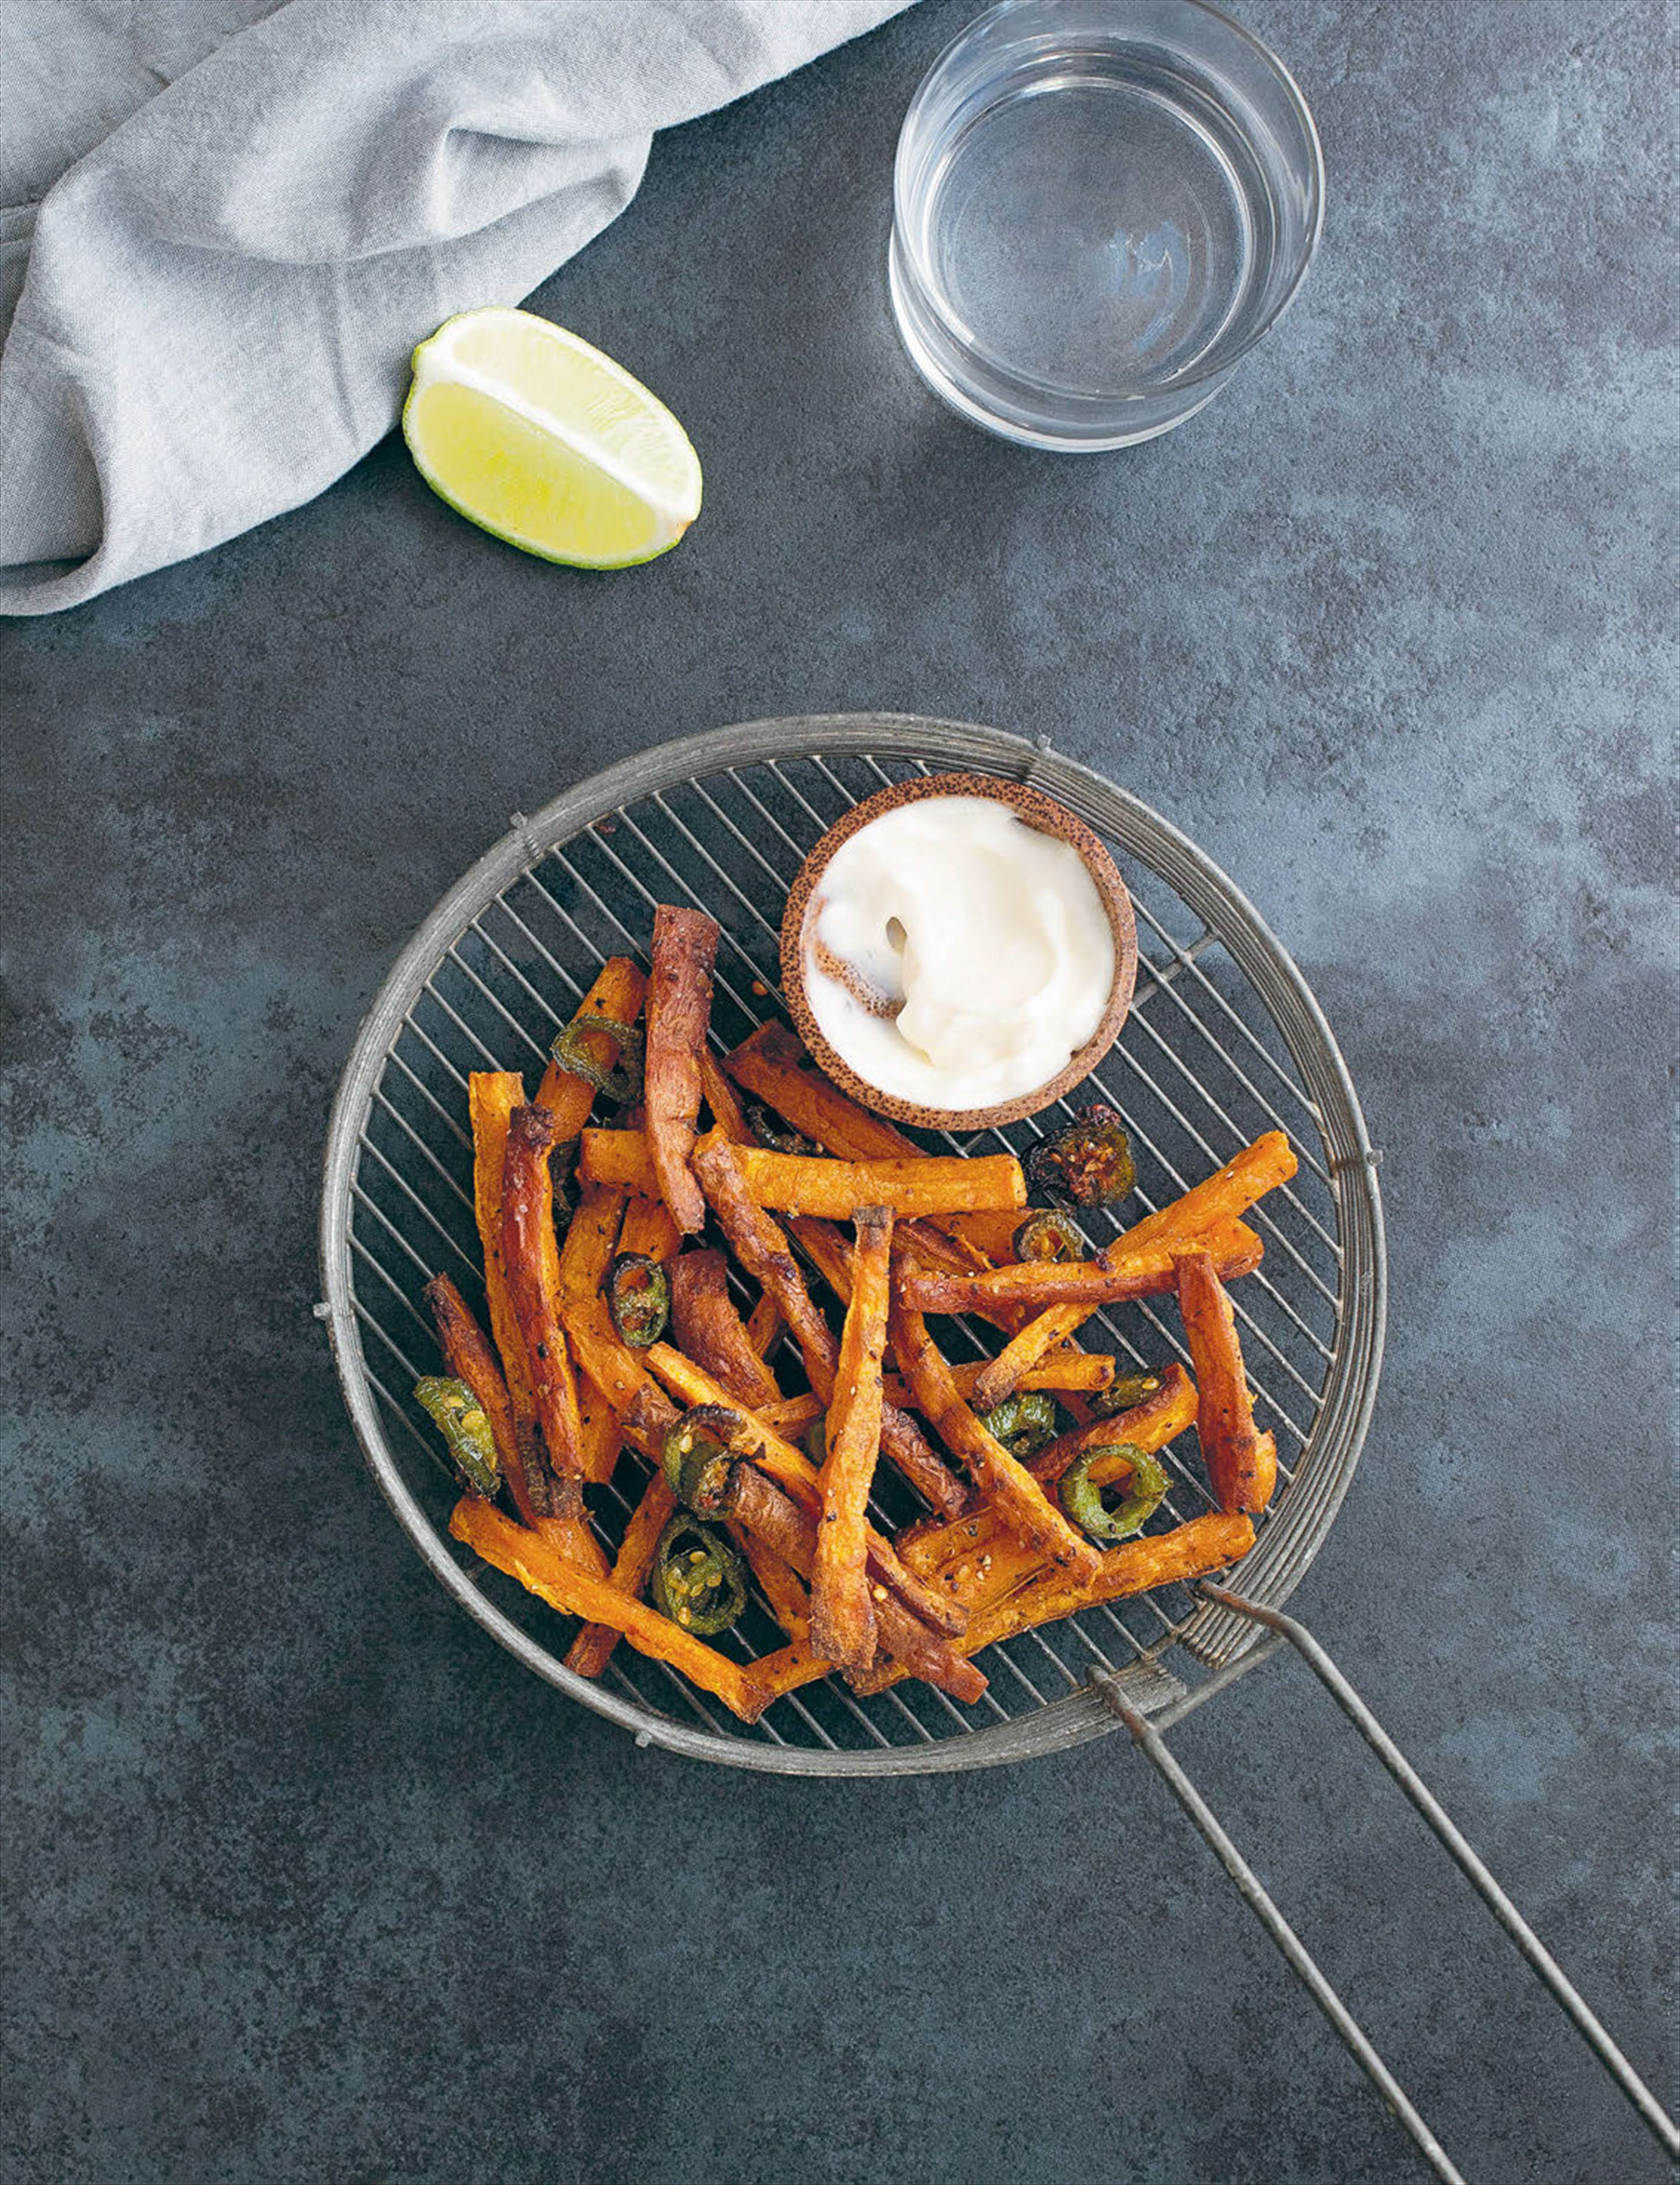 Jalapeño and garlic sweet potato fries